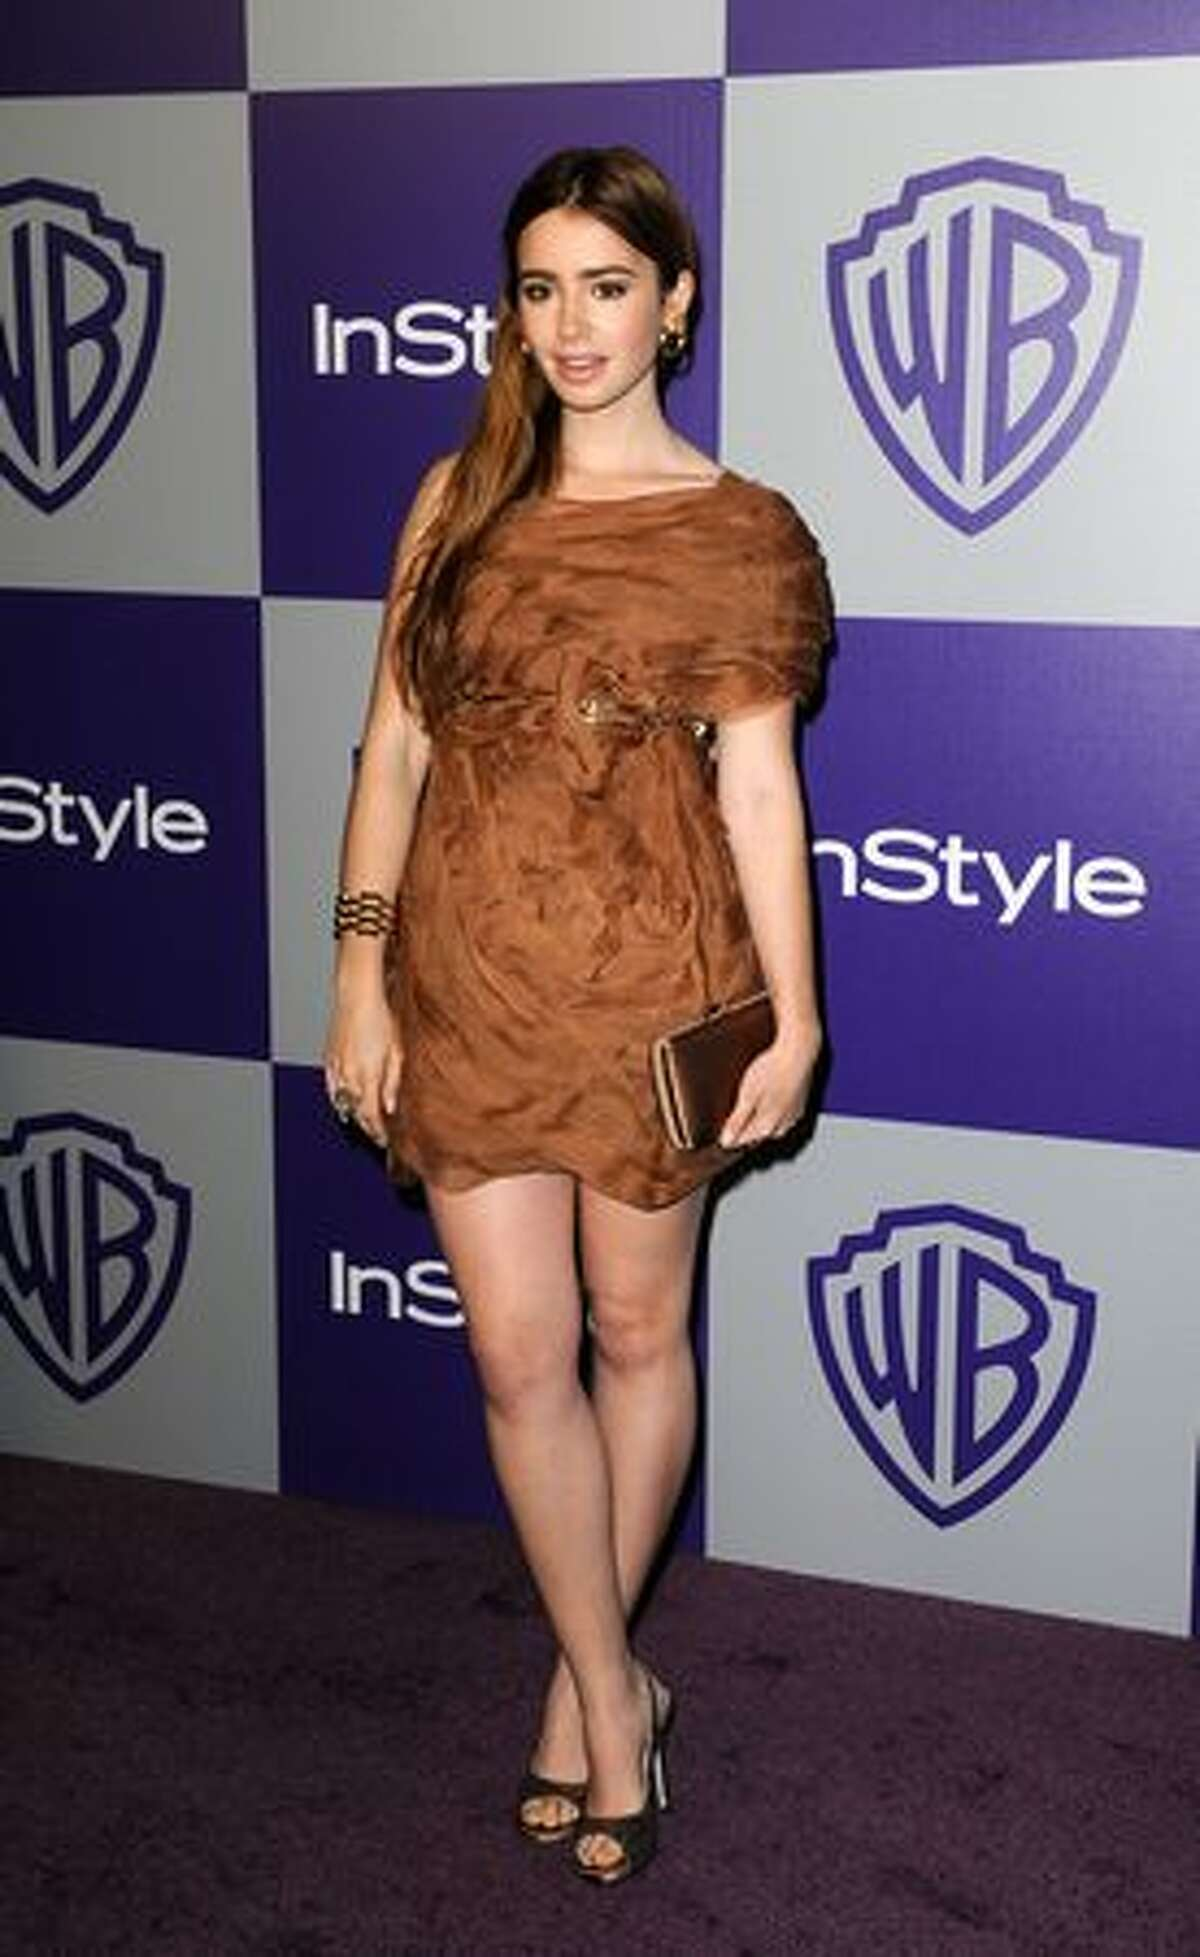 Actress Lily Collins arrives at the InStyle and Warner Bros. 67th Annual Golden Globes after party held at the Oasis Courtyard at The Beverly Hilton Hotel.